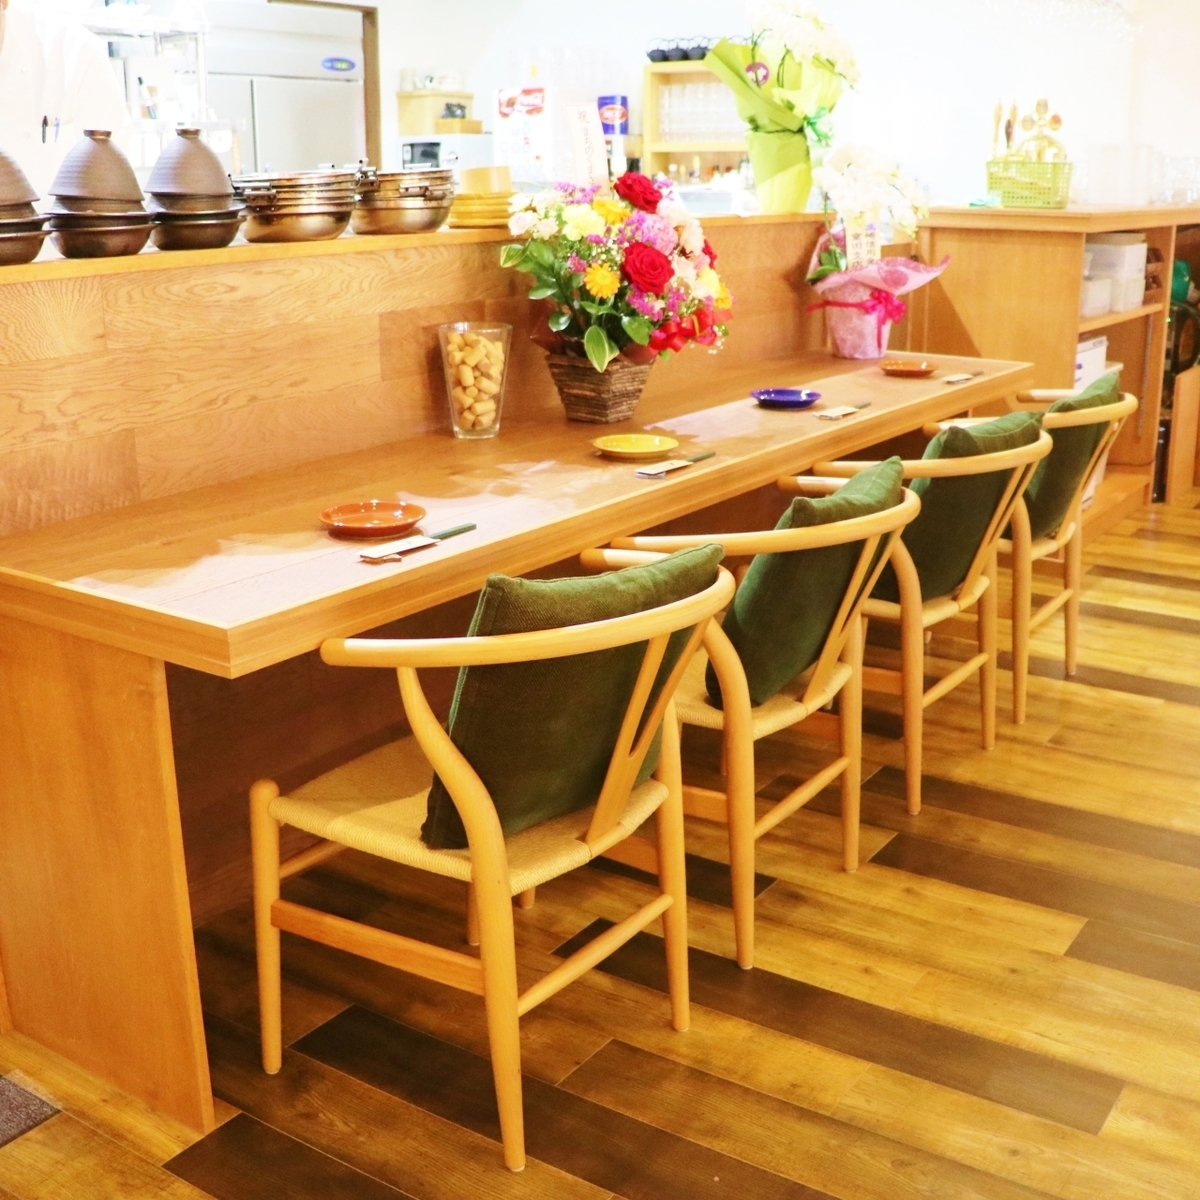 We also have a counter seat that allows even one person to enjoy meals and drinks ☆